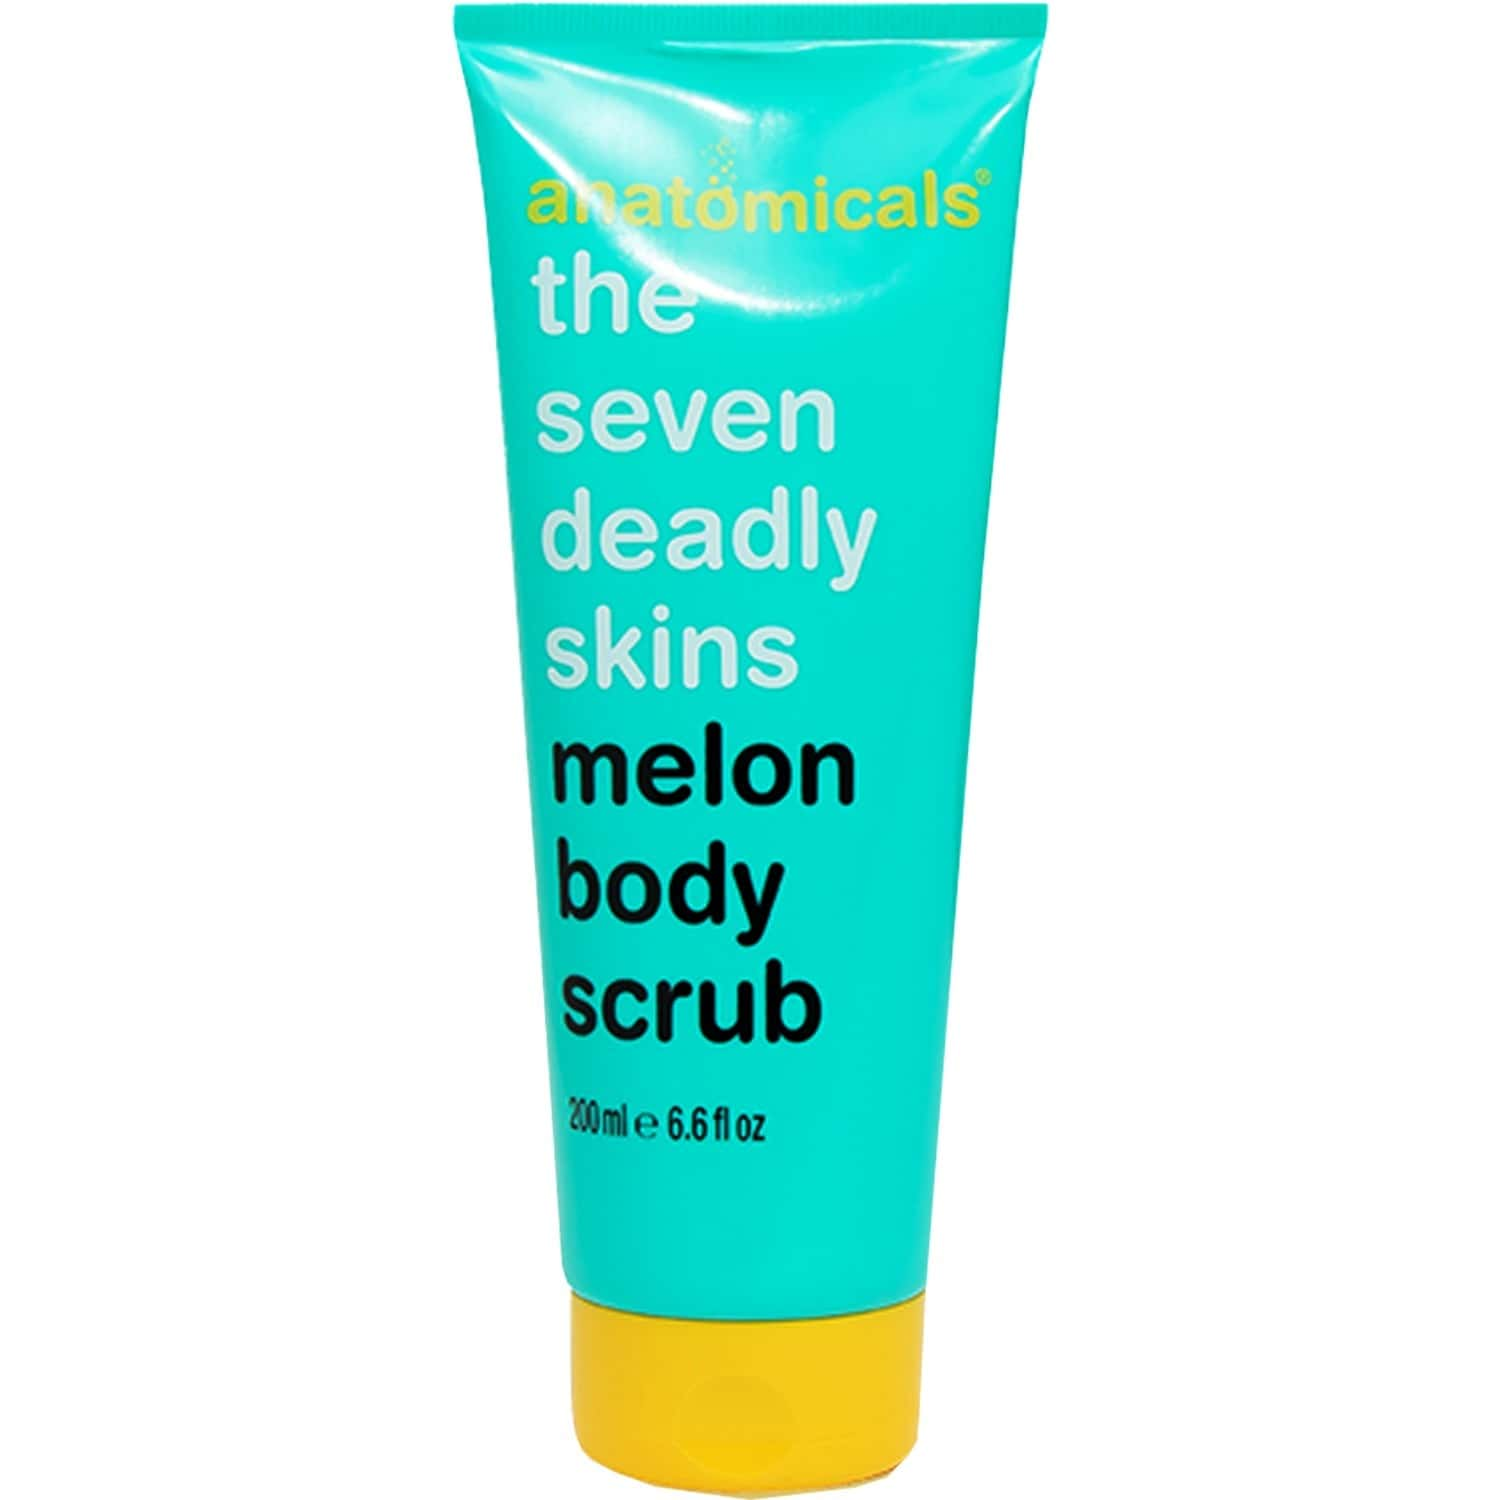 Anatomicals   Melon Body Scrub With Pumice Granules And Melon Extract   Exfoliates The Dead And Dull Skin Away   Fruity Fragrance   Microbead And Paraben Free   200 Ml